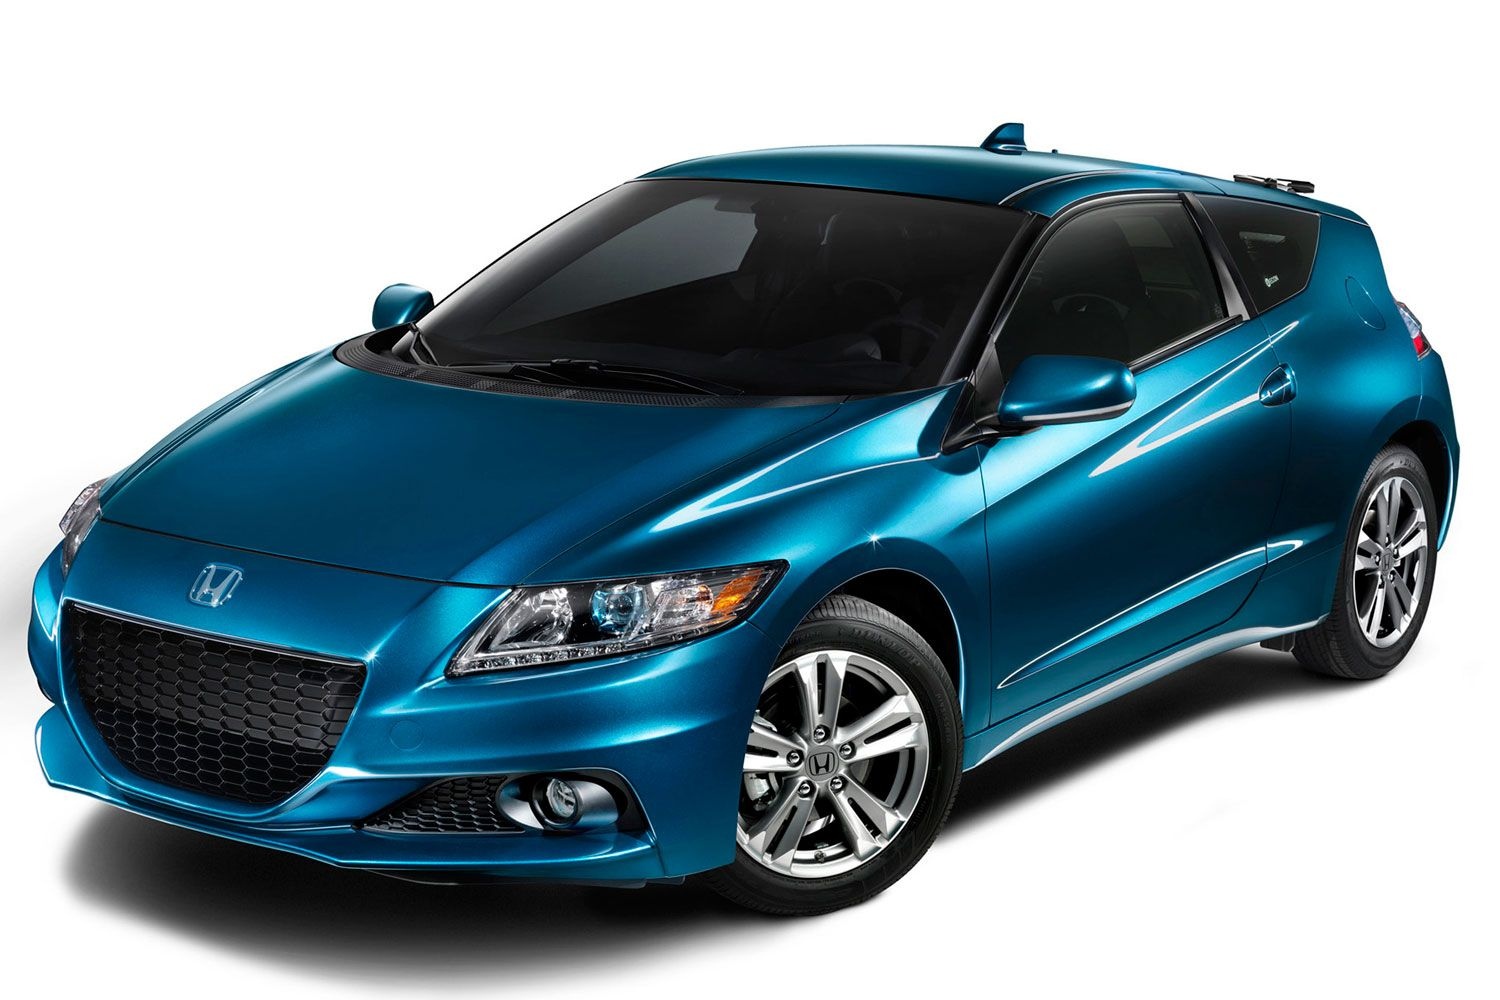 Honda crz photo - 10